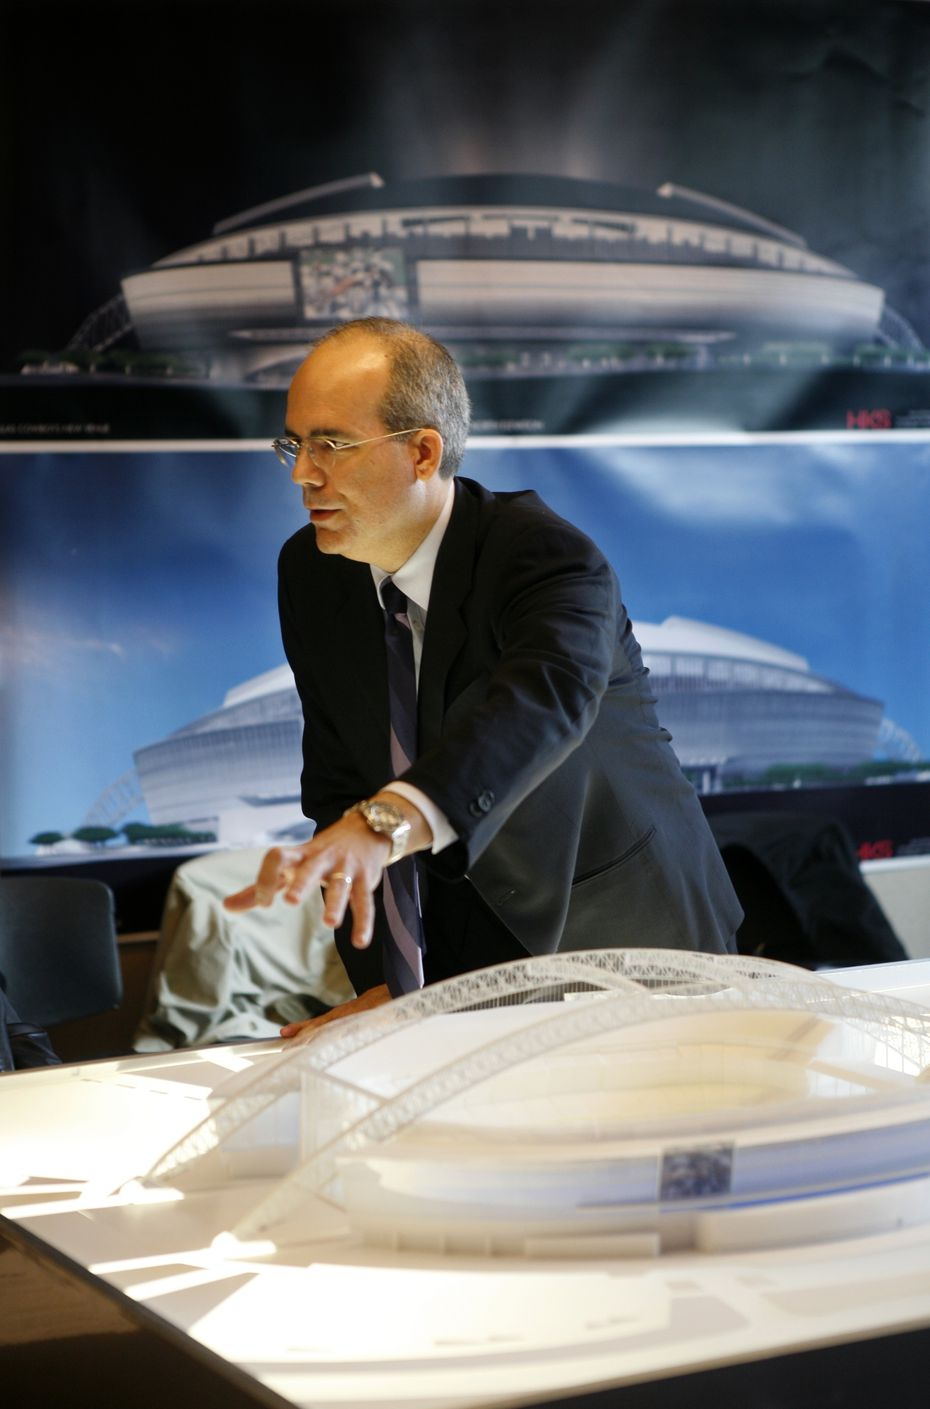 A 2006 file photo shows Bryan Trubey with a model of what became AT&T Stadium.